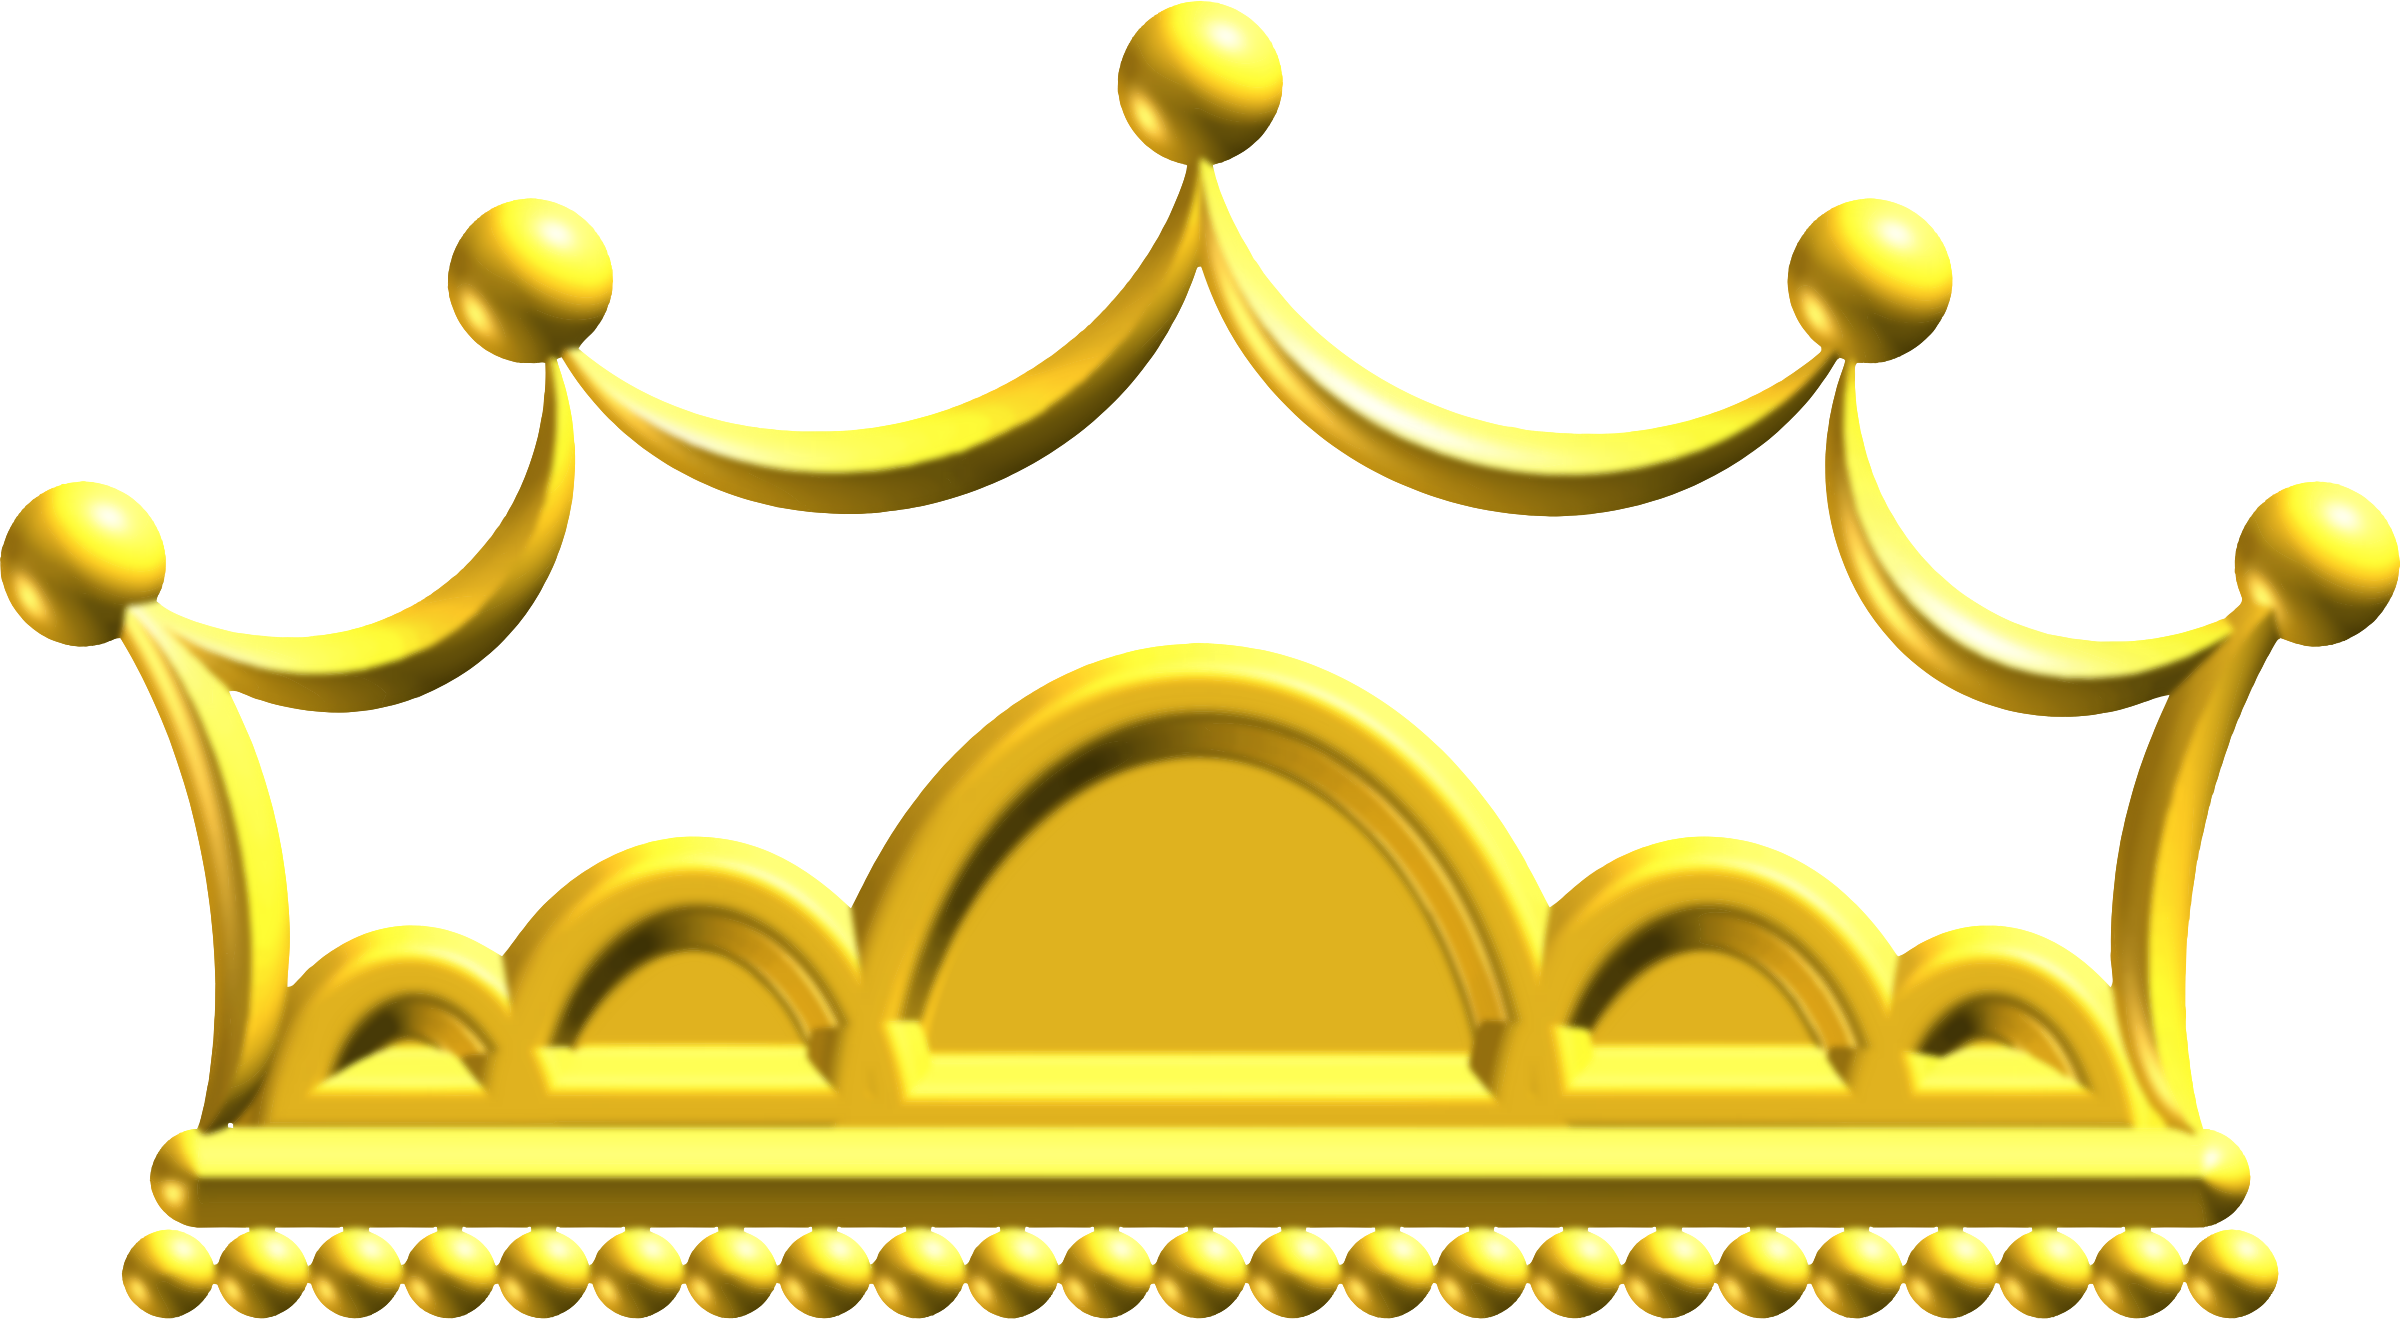 Clipart gold crown graphic library download Clipart - Gold crown 6 graphic library download